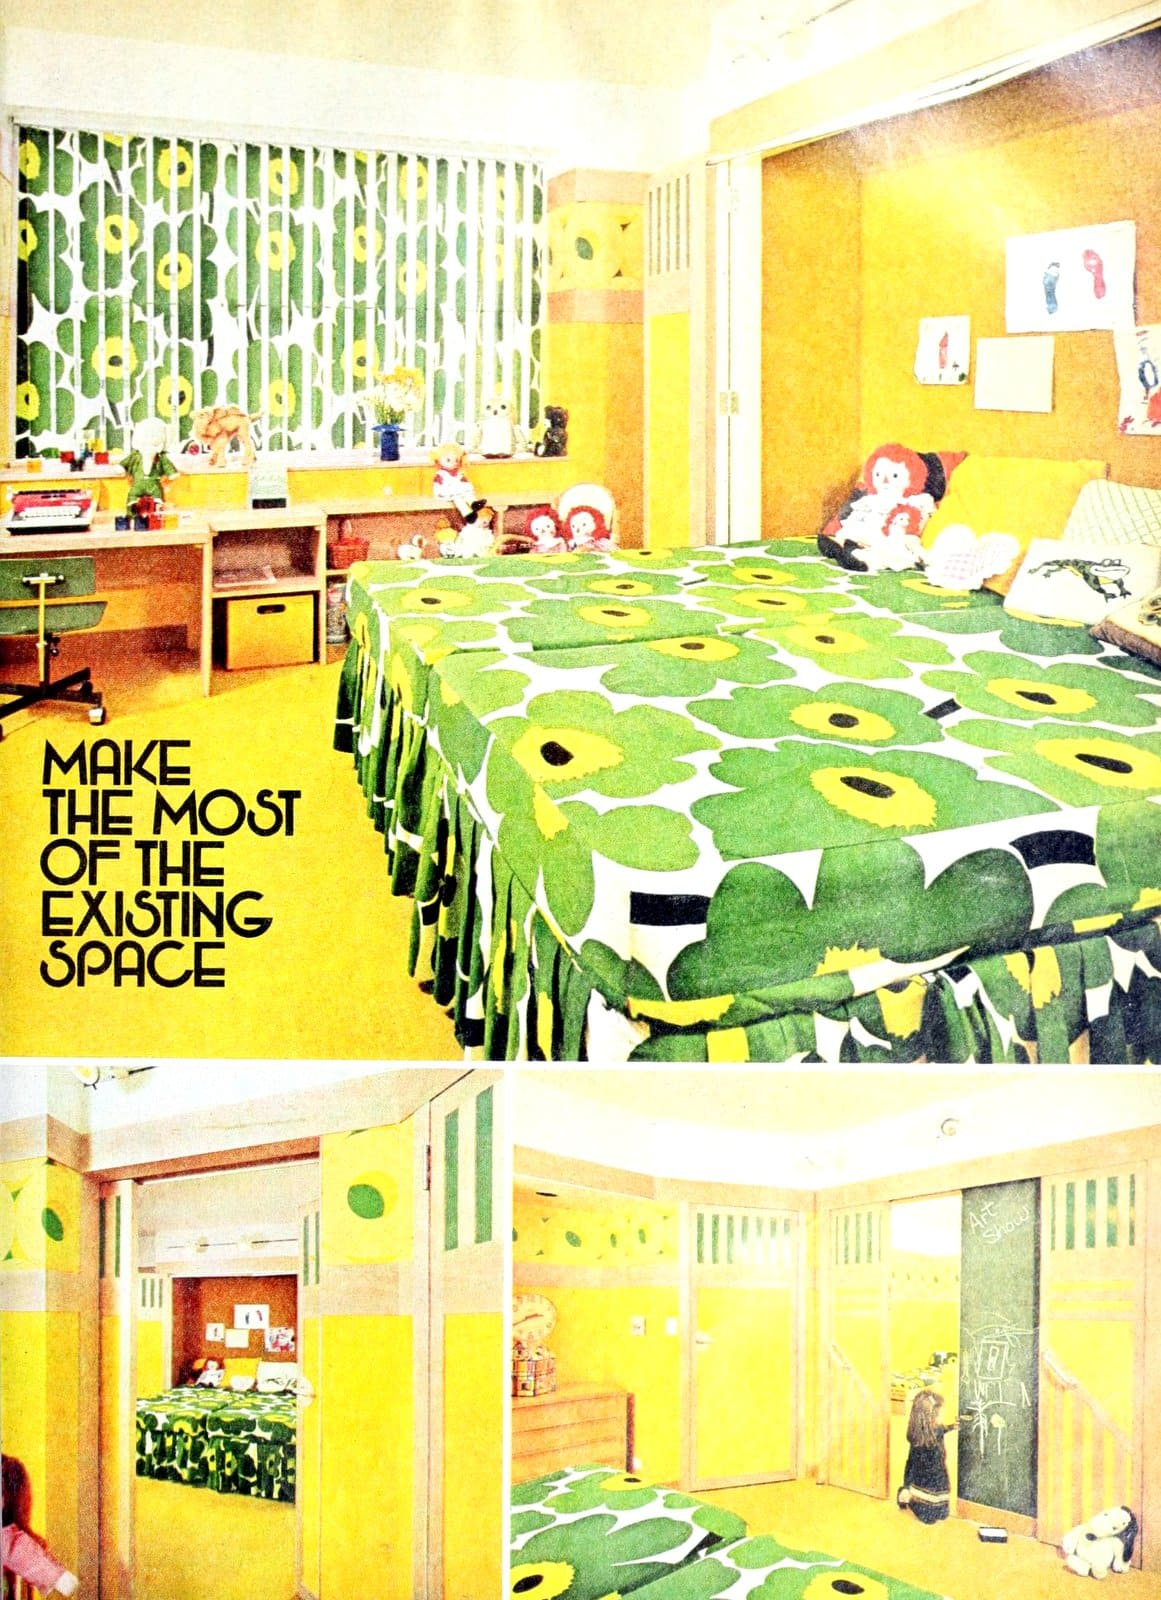 Making the most of existing space - Bedroom decor for two kids (1975)